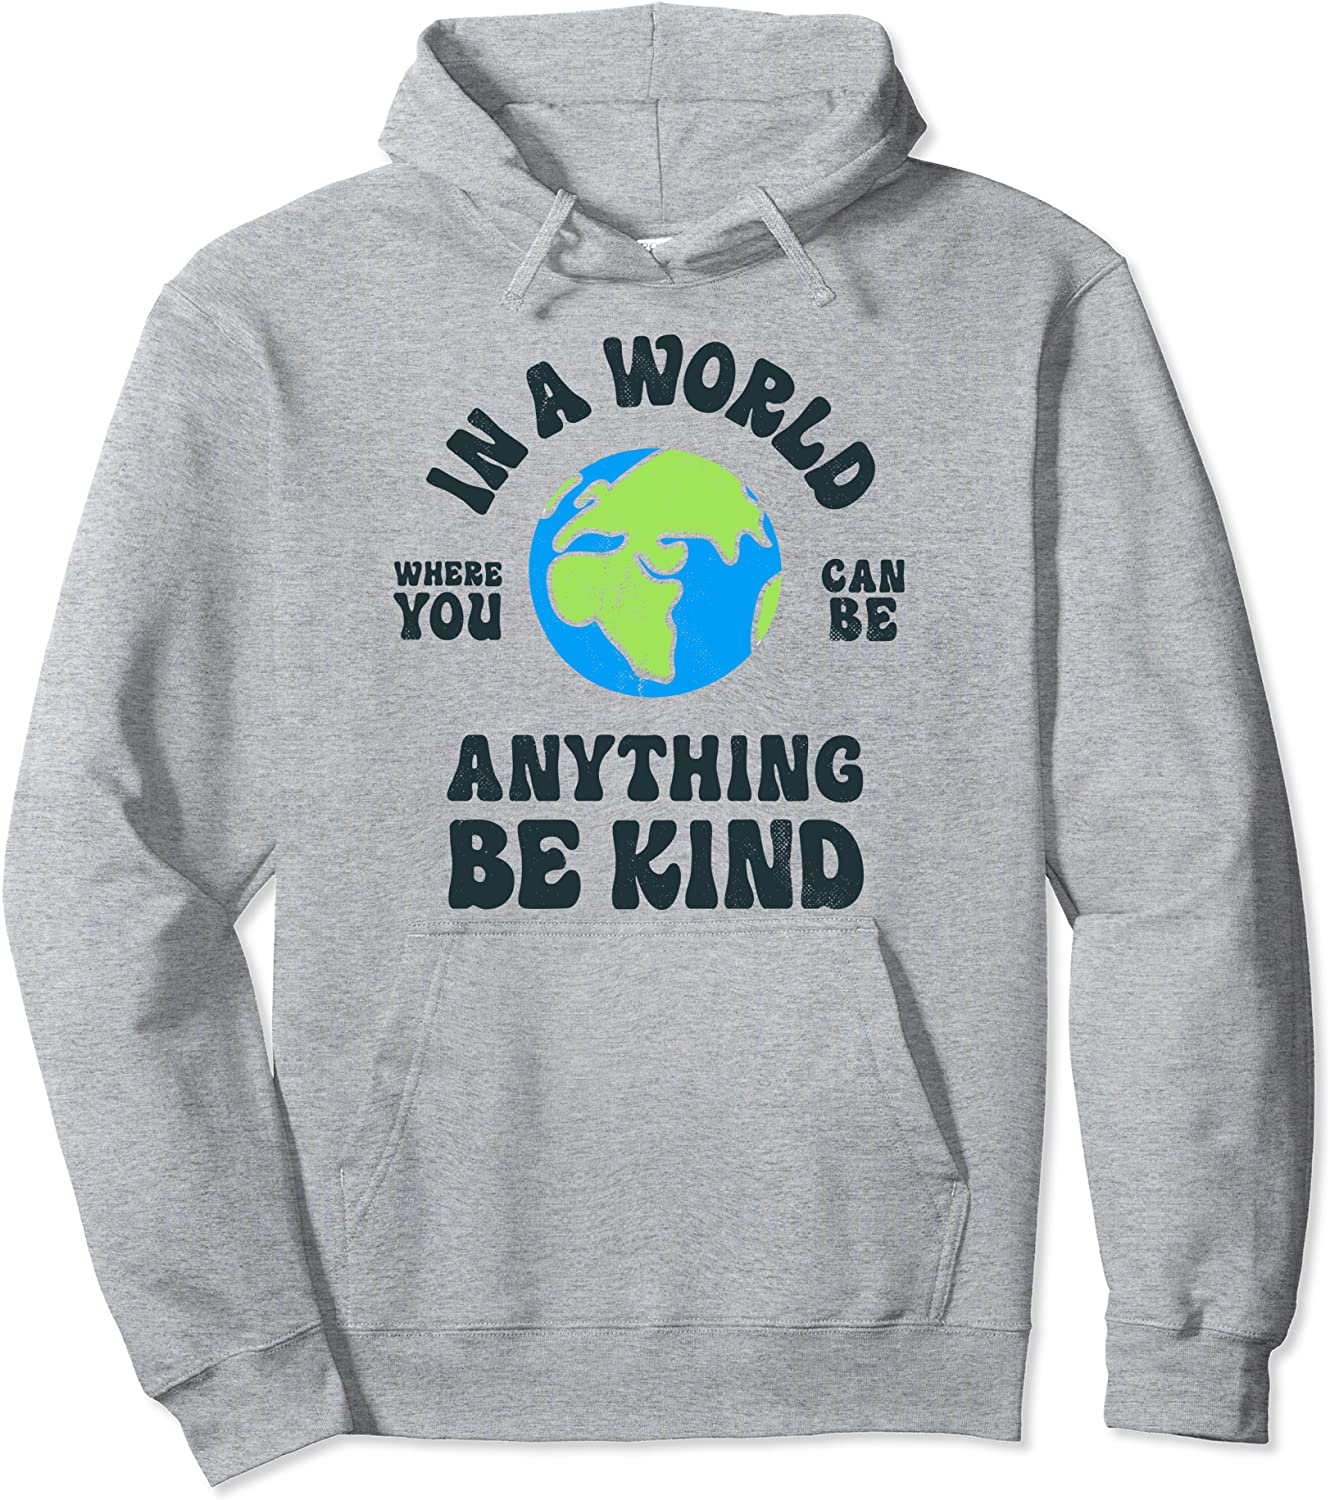 Be Kind In A World Where You Can Be Anything Kindness Retro Pullover Hoodie-TH